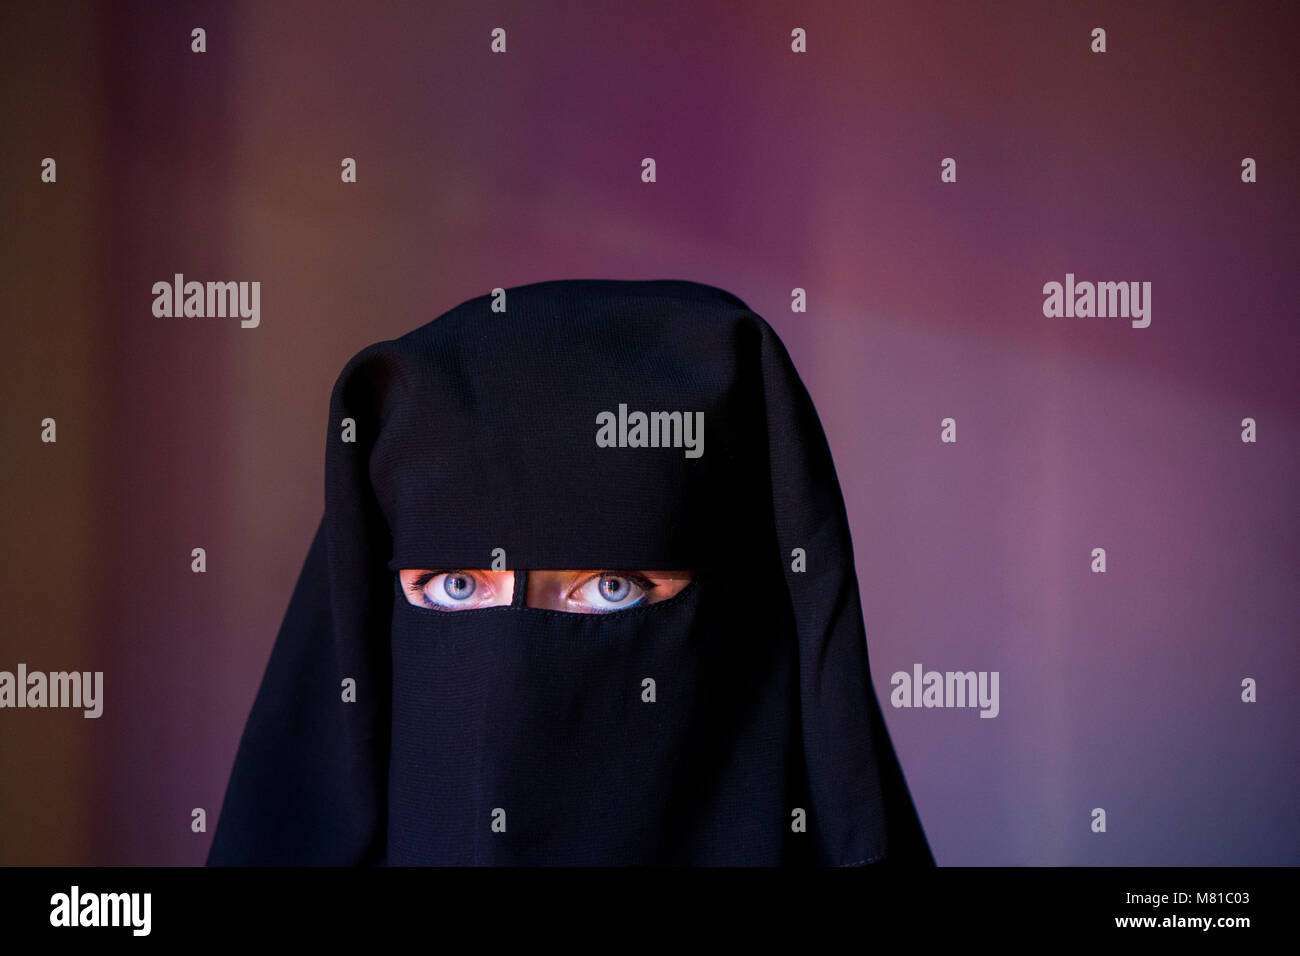 Arab woman with blue eyes with face covered with black niqab - Stock Image